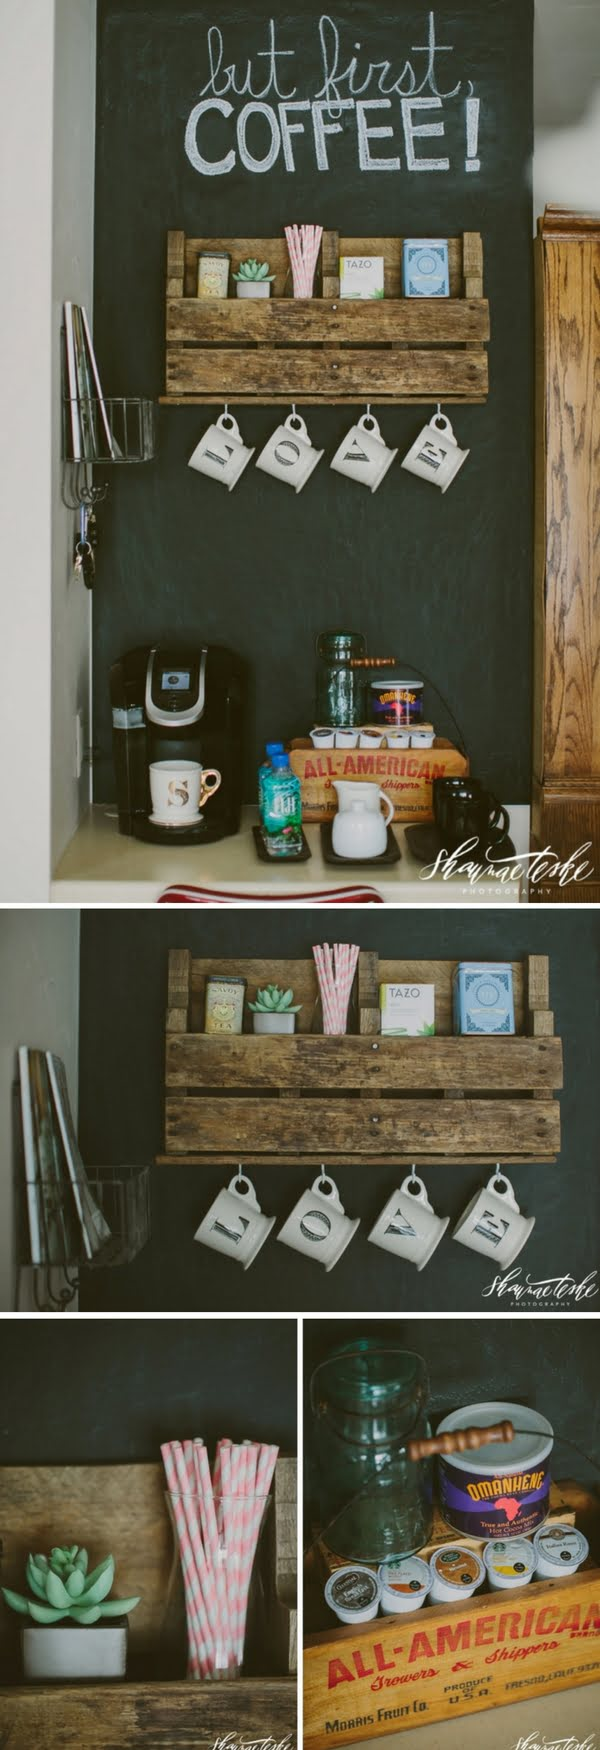 15 Simple DIY Ideas to Make the Best Coffee Station at Home - What a brilliant idea for a DIY rustic coffee bar with chalkboard